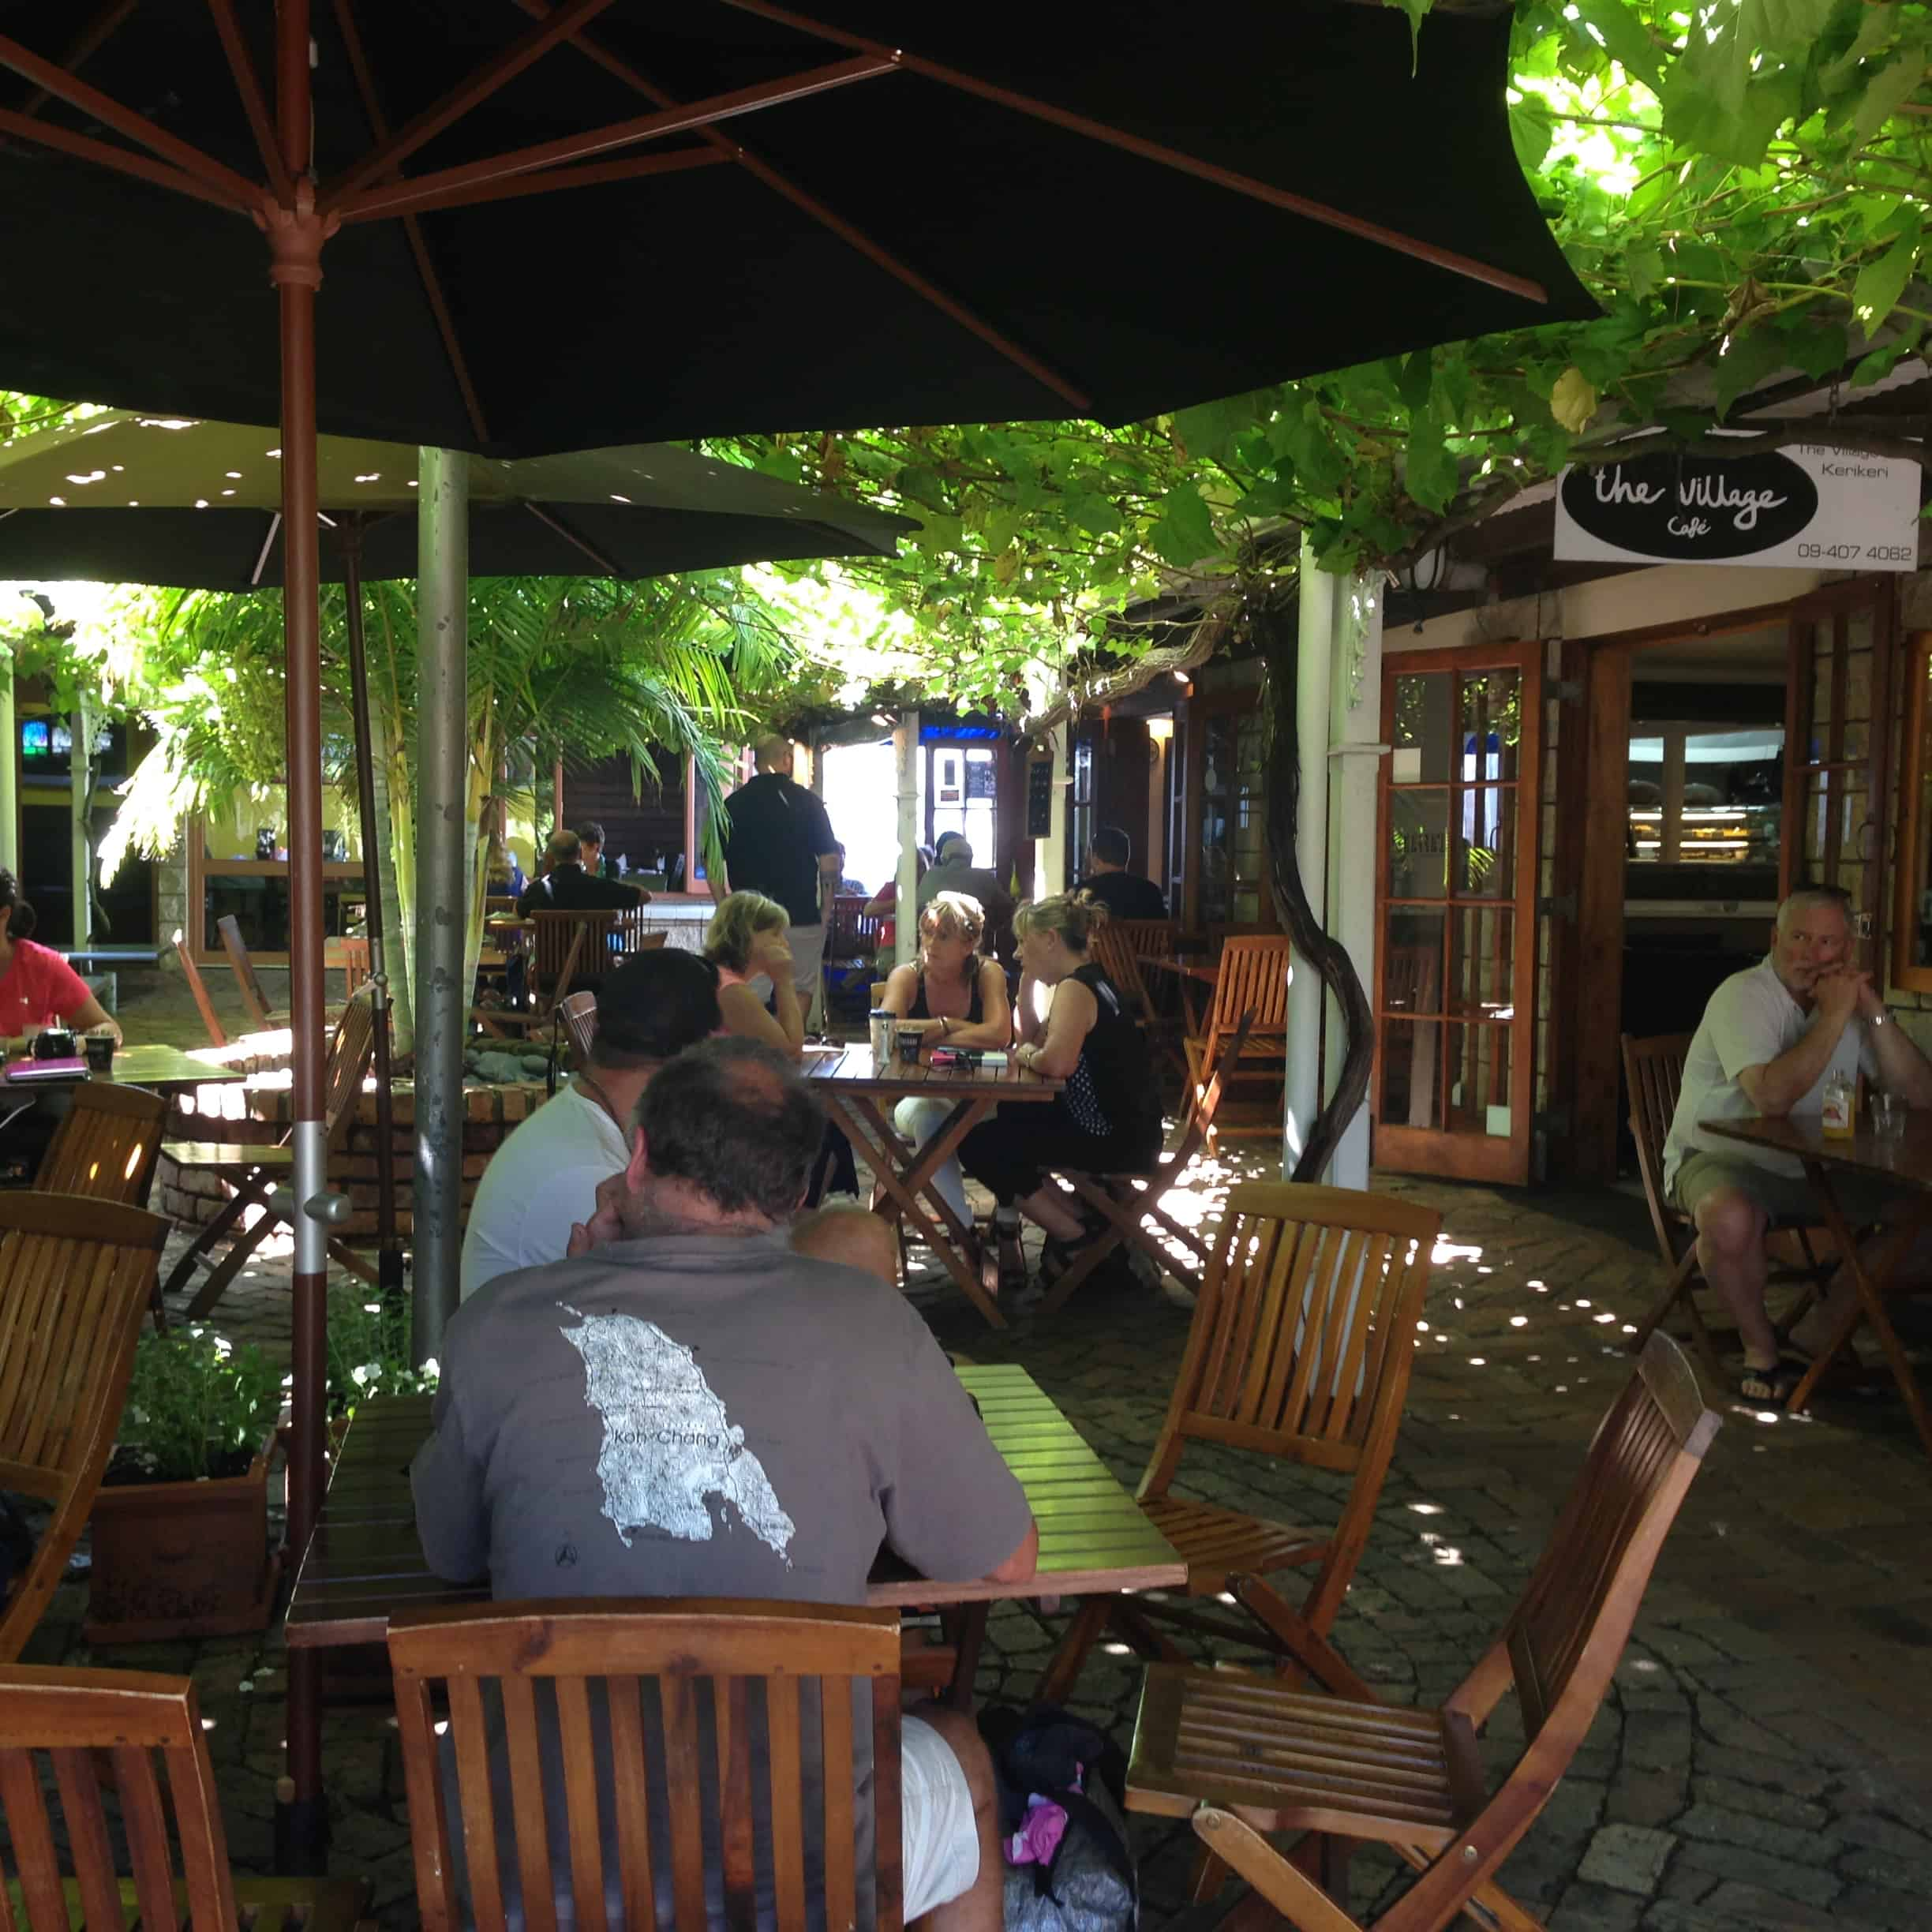 The Village Cafe enjoys a wonderful location off Kerikeri Road. It's lovely to sit under the shady vines on a hot Northland summer's day.